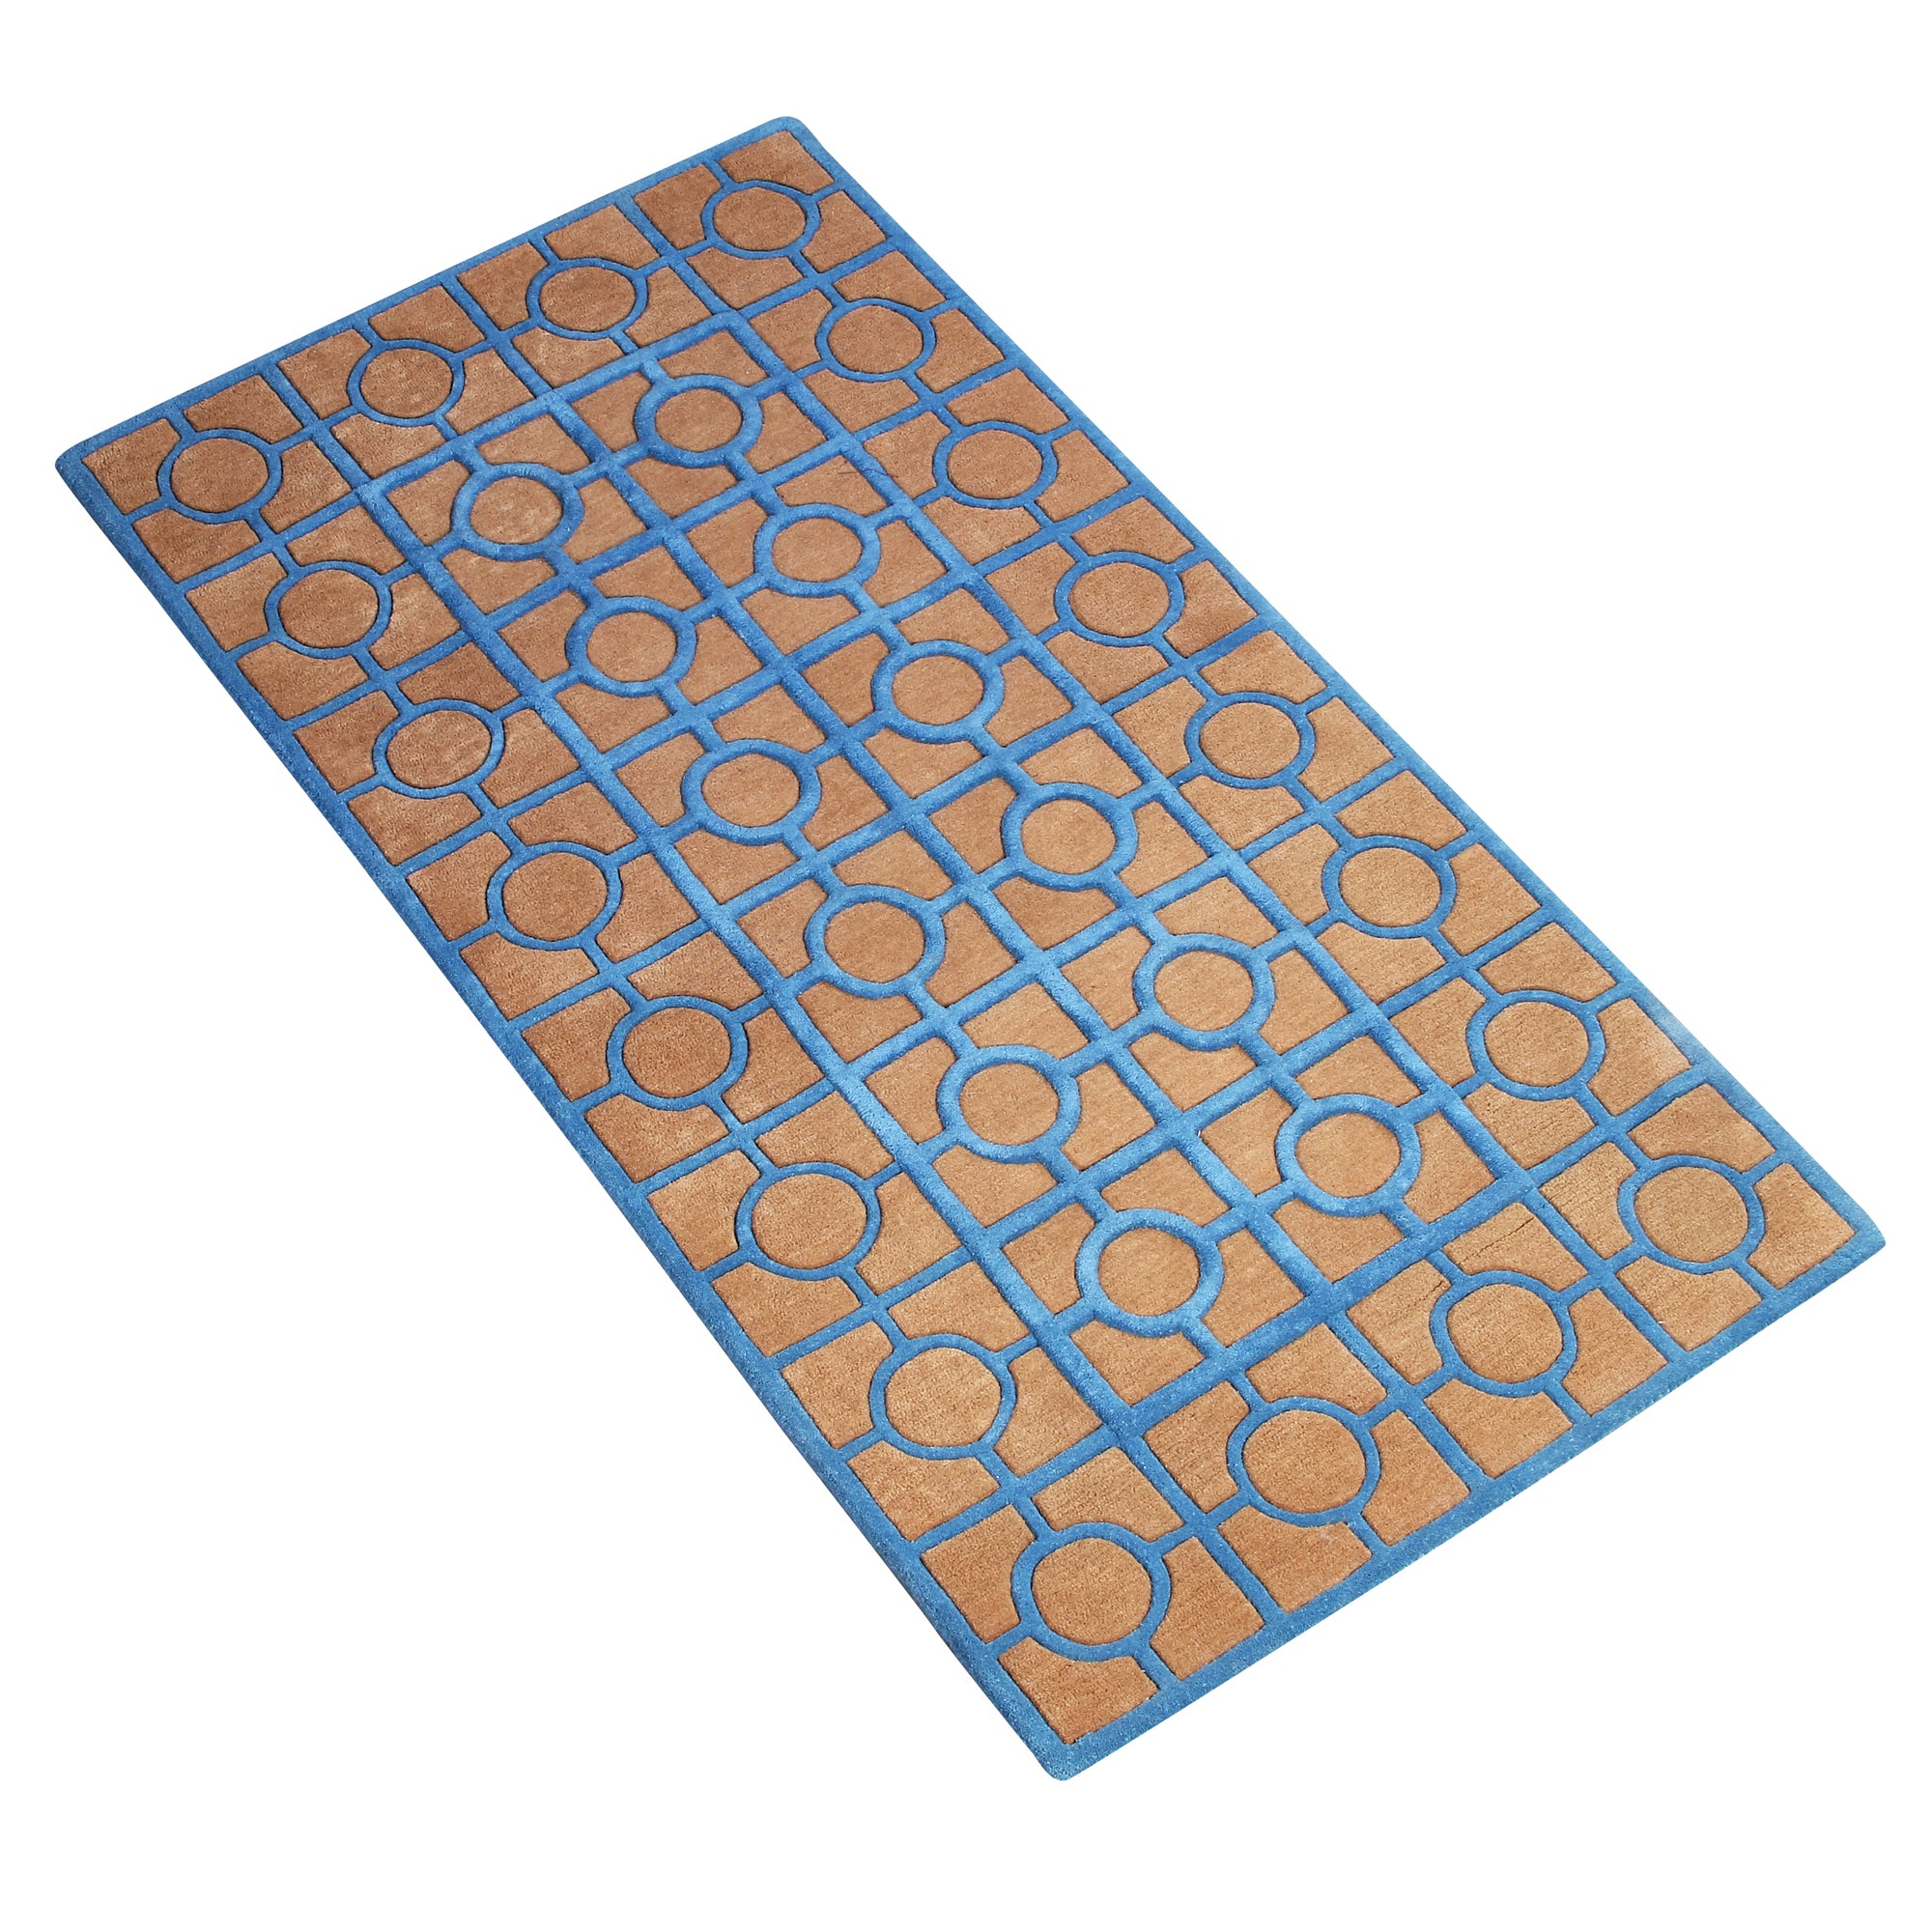 BROWN BLUE GEOMETRIC  HAND TUFTED RUG